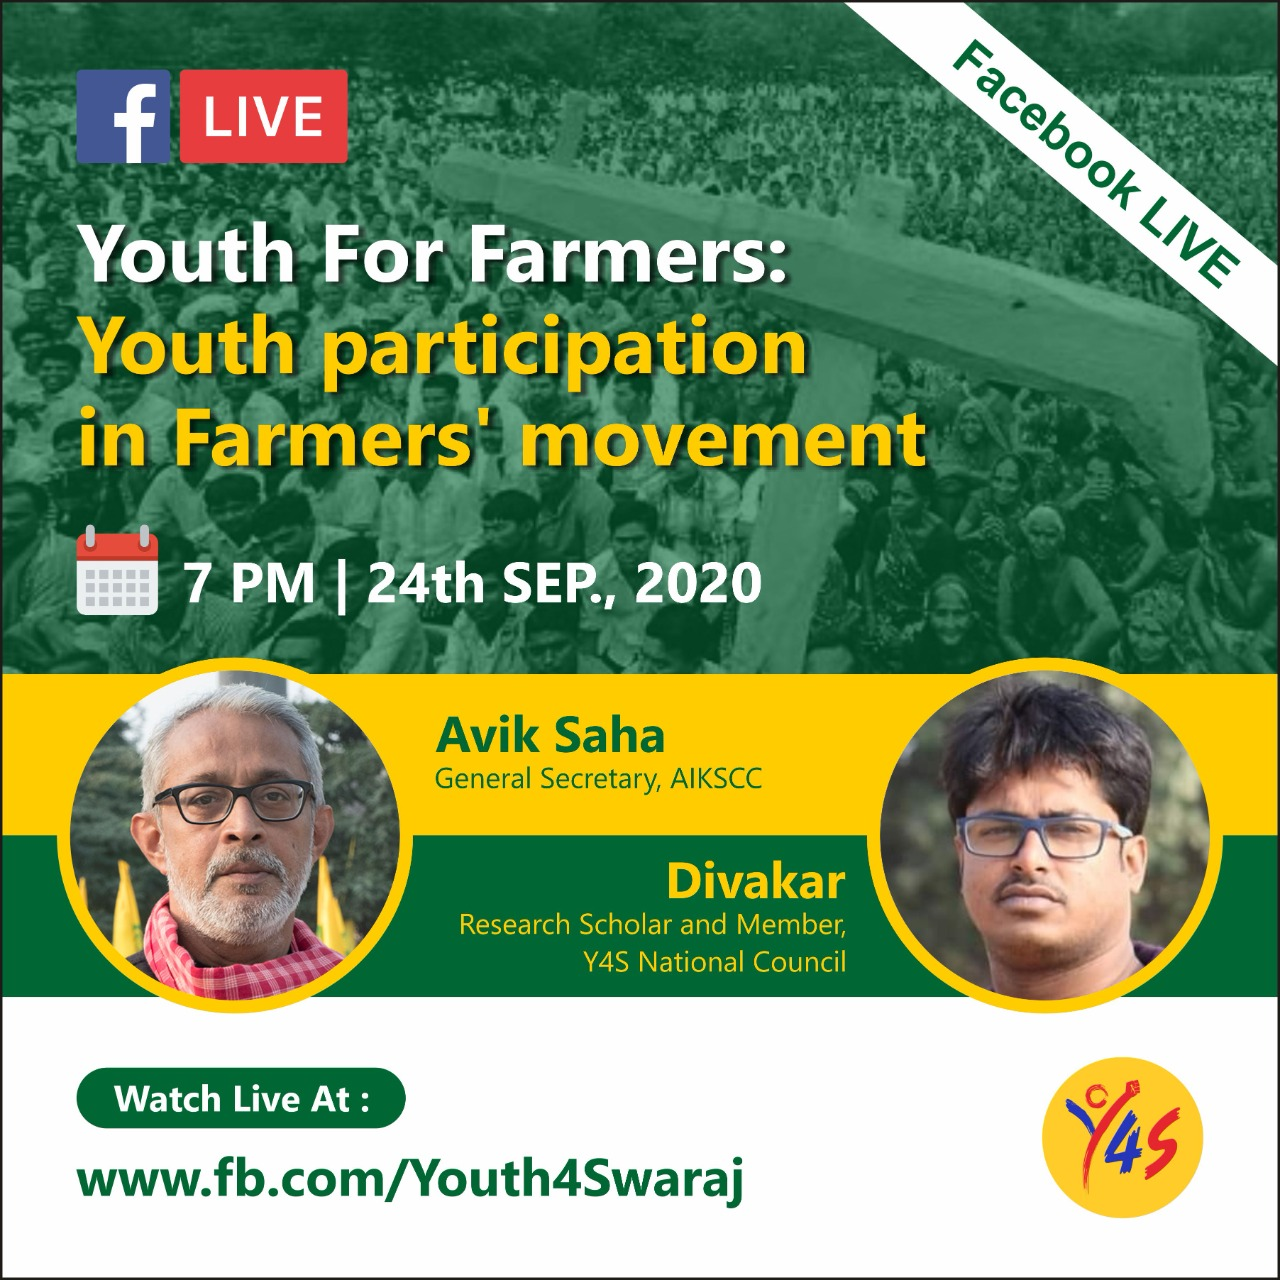 Youth4Swaraj event to support farmers' movement